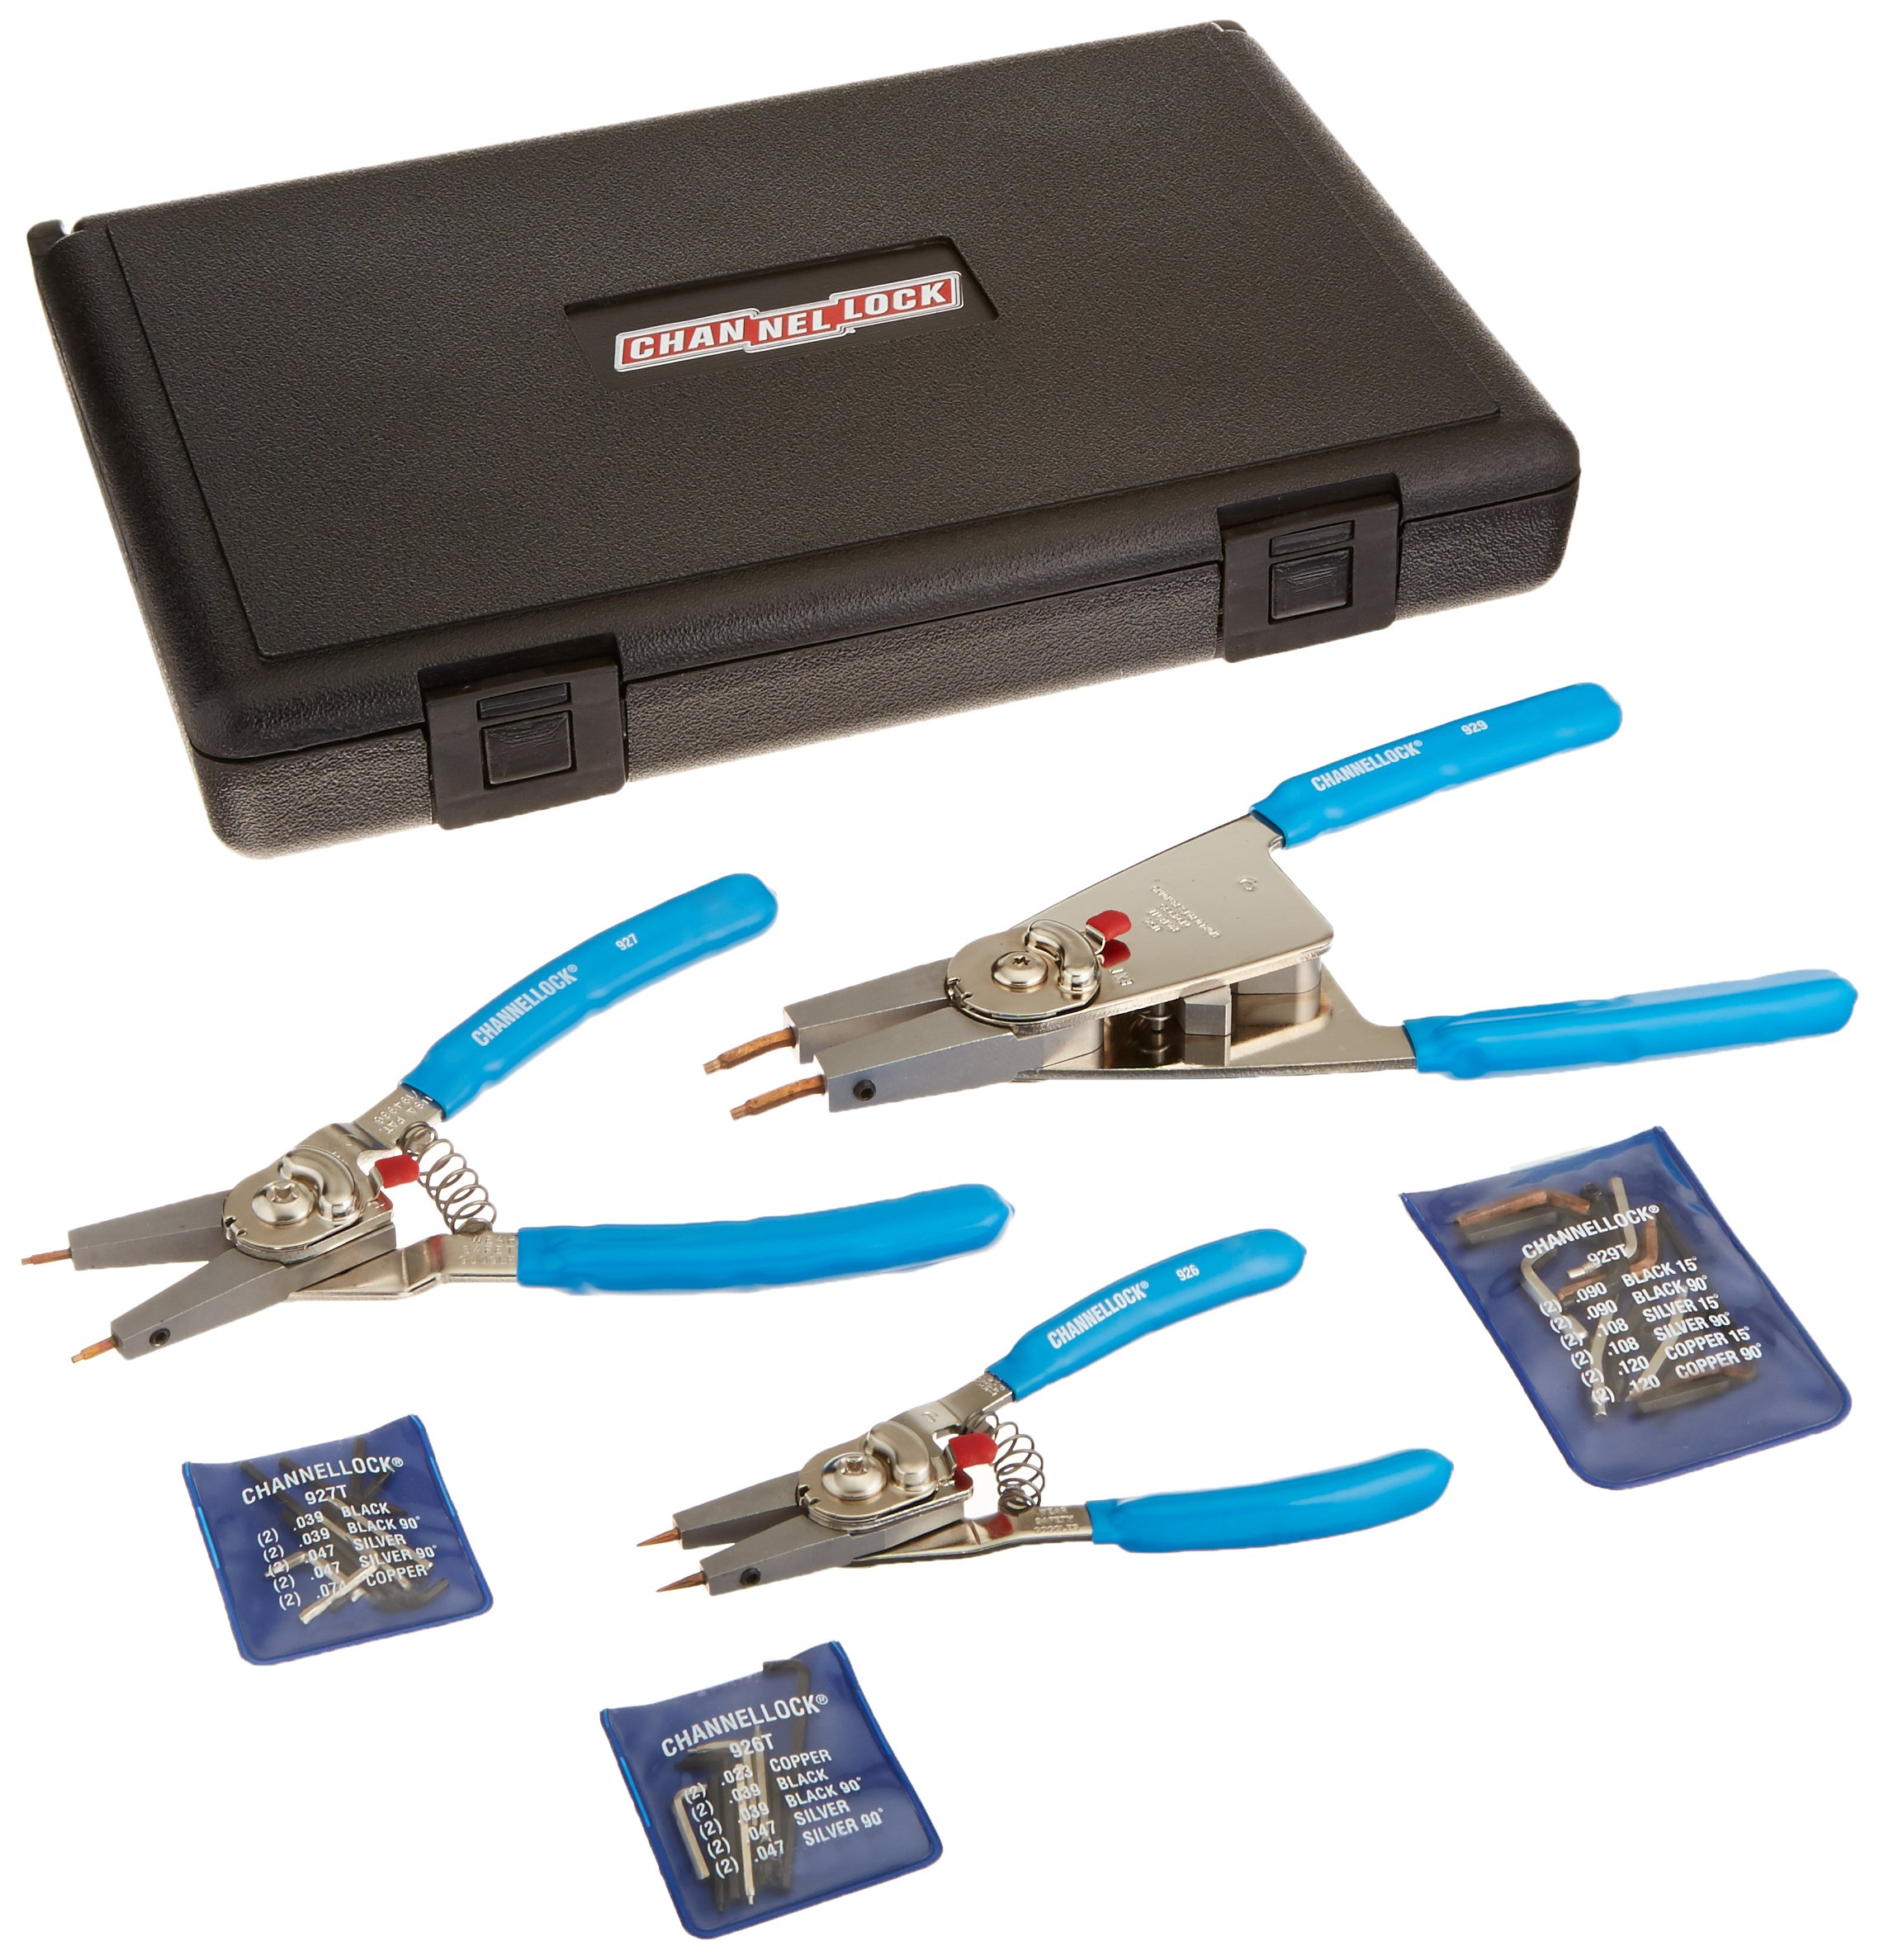 Channellock RT-3 Convertible Retaining Ring Plier Set, 3-Piece by Channellock